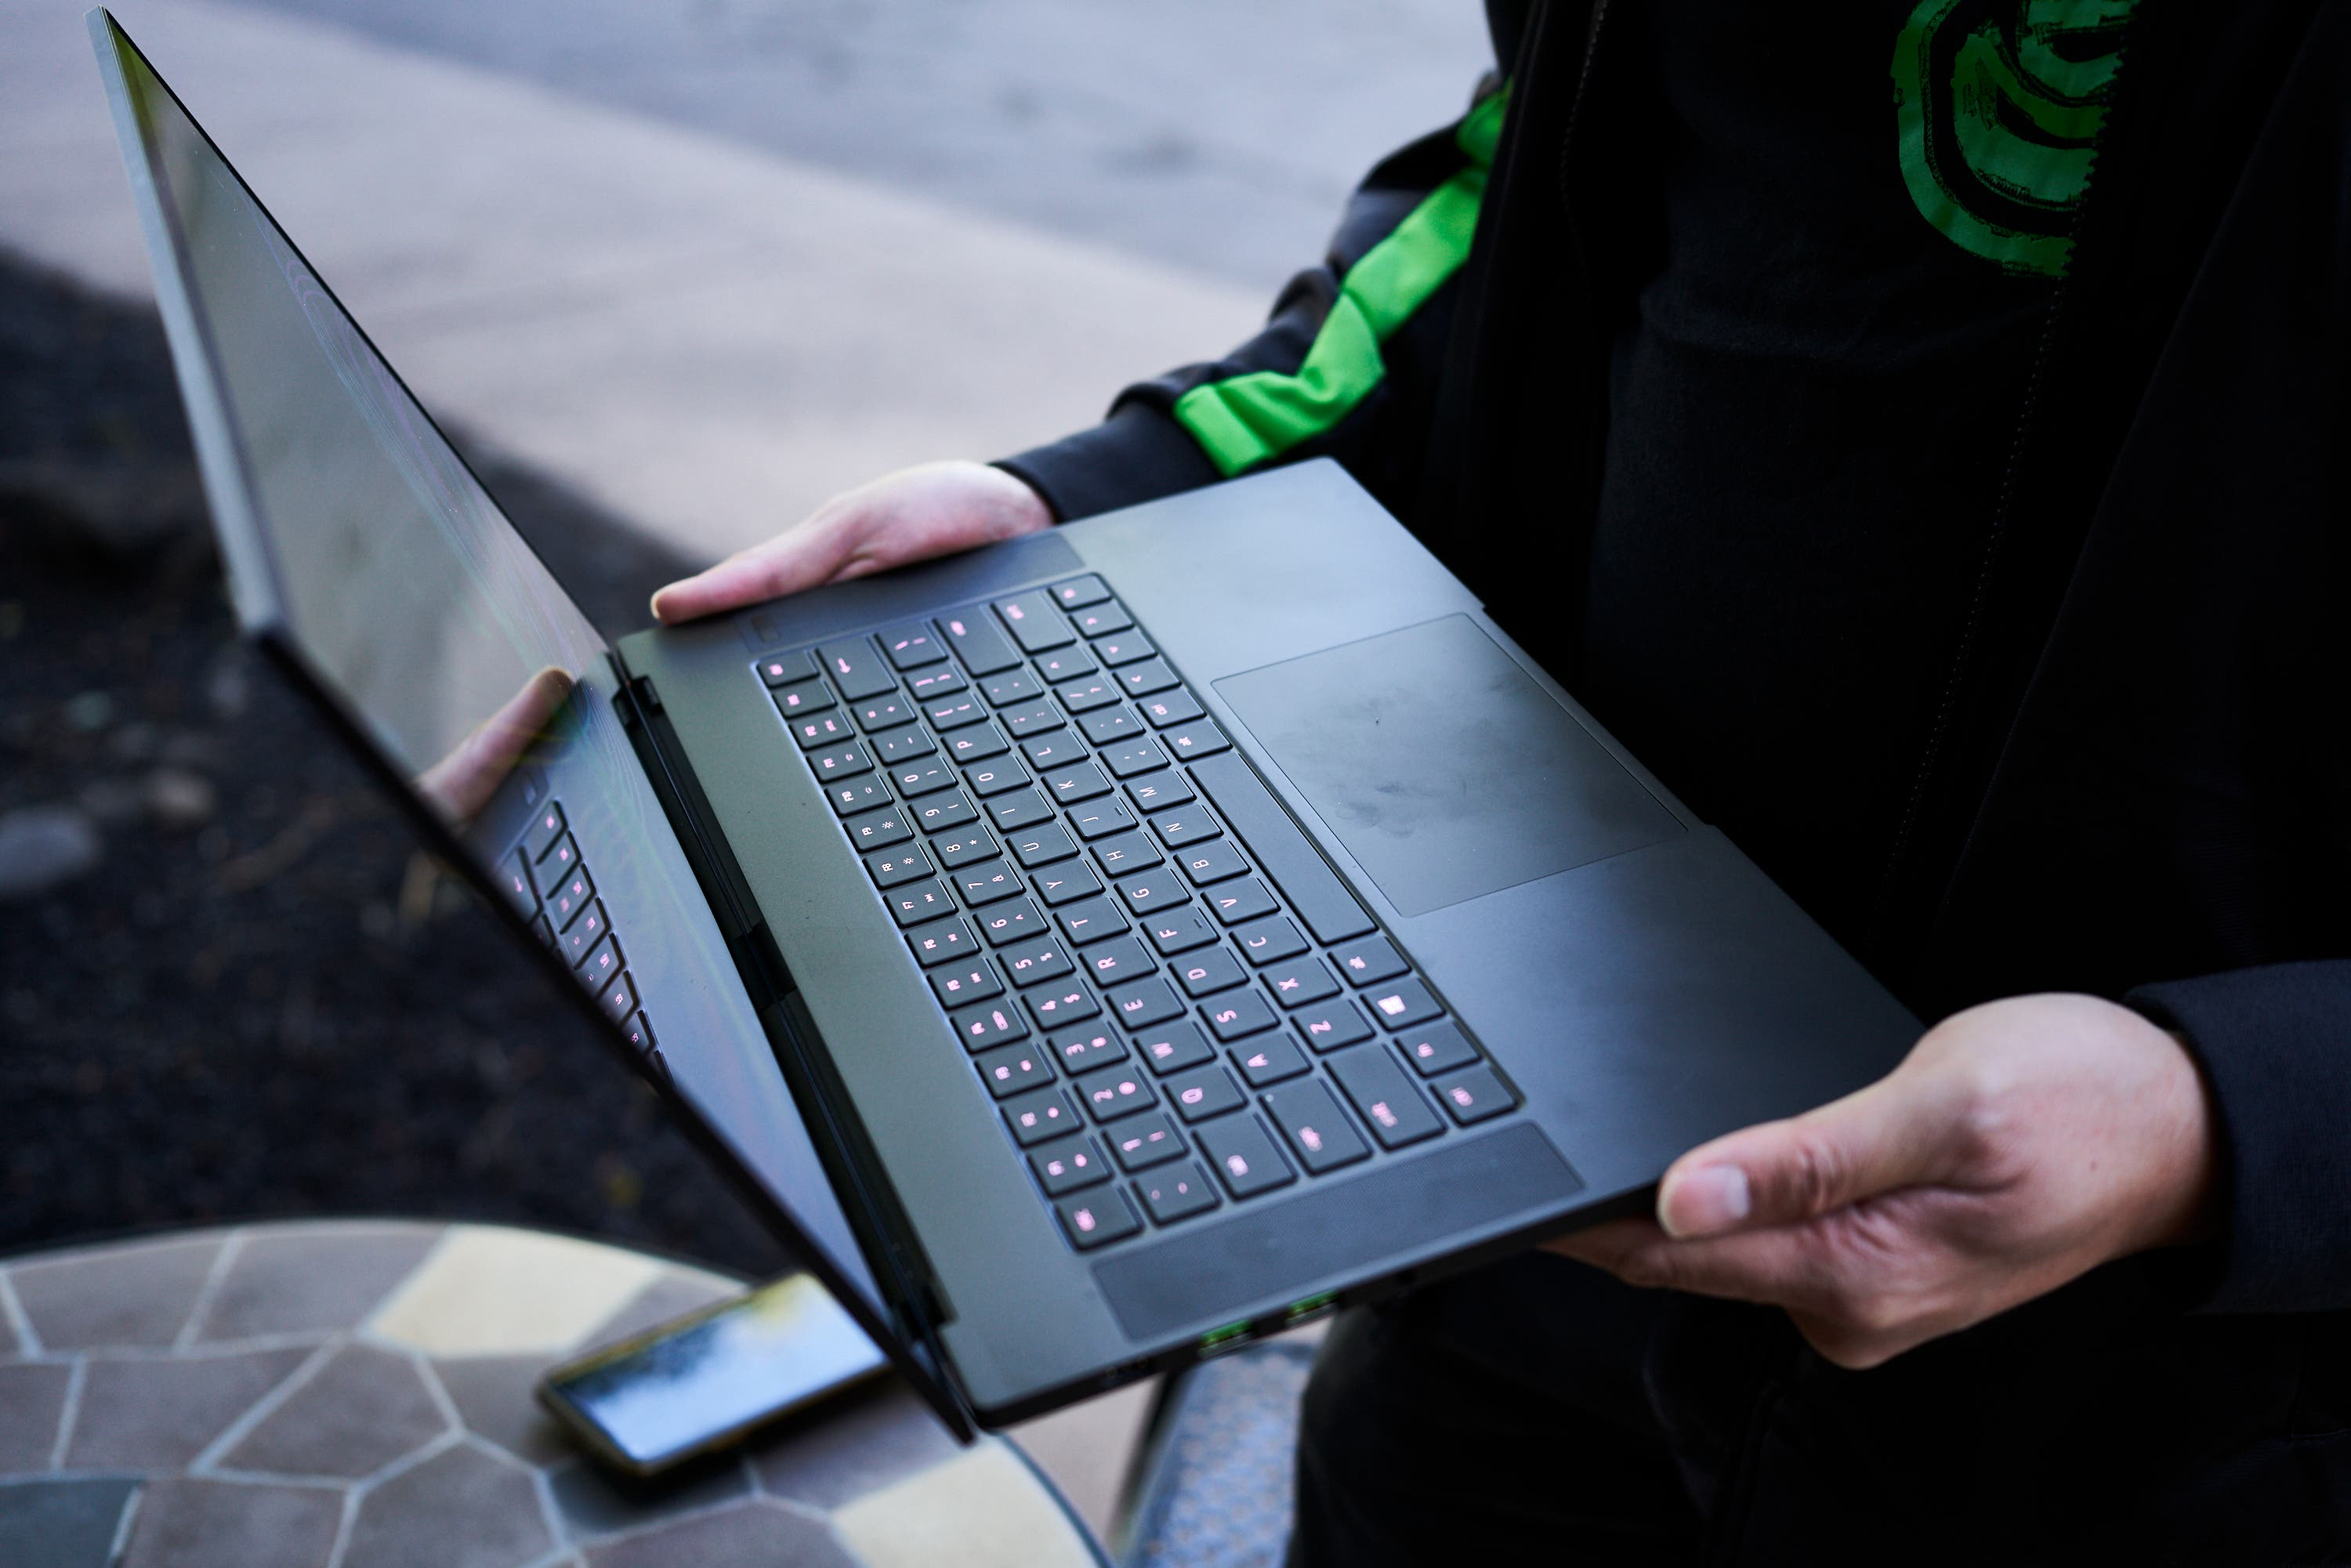 Editing Photos with the Razer Blade 15 Advanced Laptop